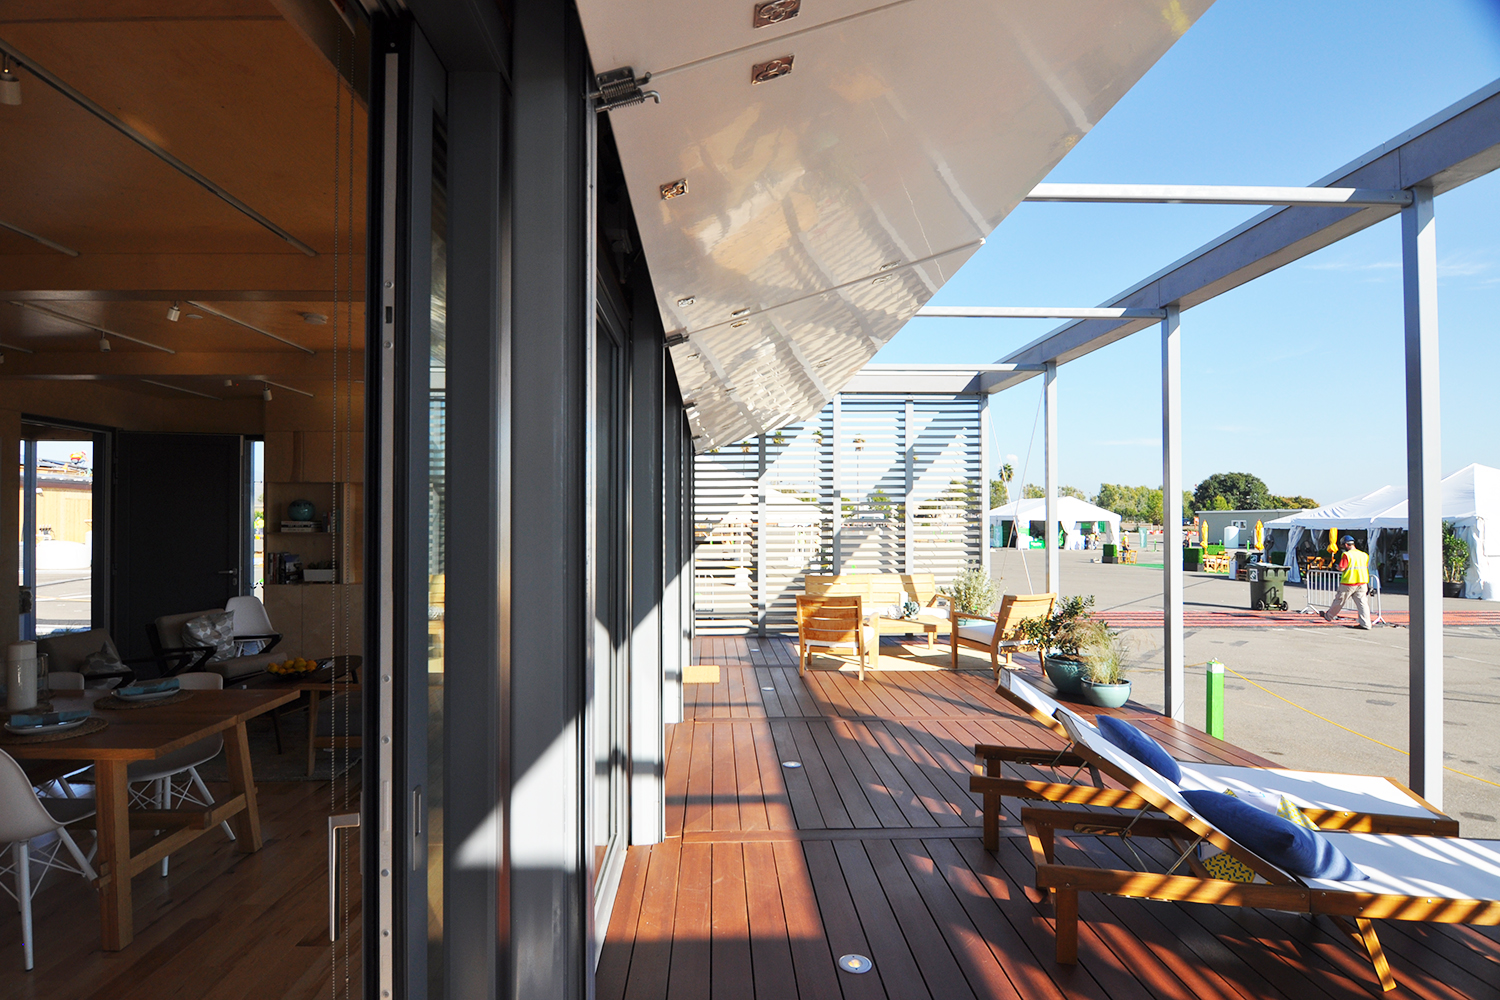 Stevens institute of technology 39 s sure house wins the 2015 for Solar decathlon 2015